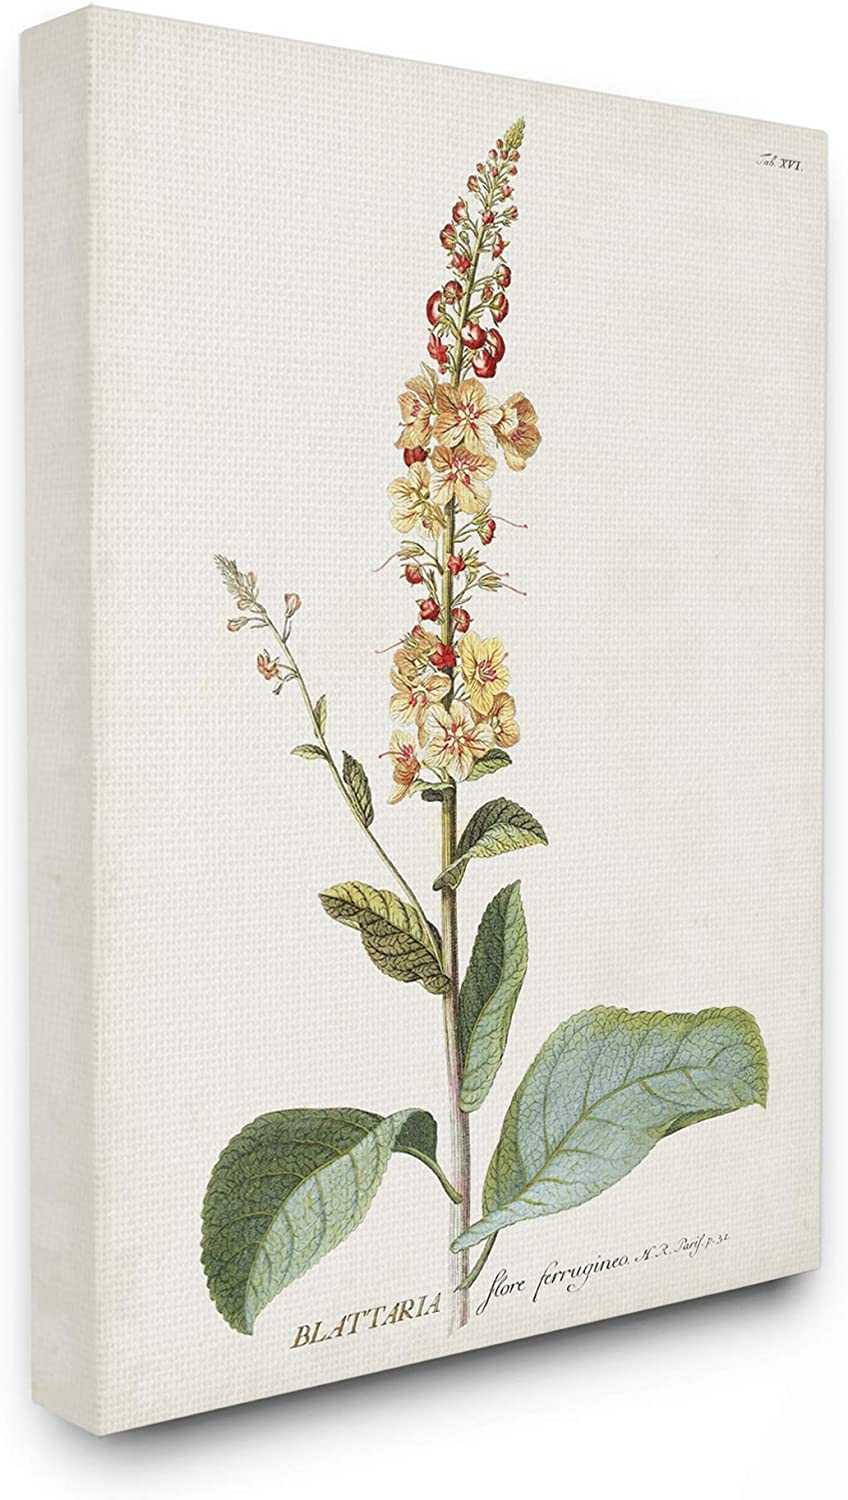 Stupell Industries Botanical Plant Illustration Flowers Vintage Canvas Wall Art, 16 x 20, Design by Artist Unknown